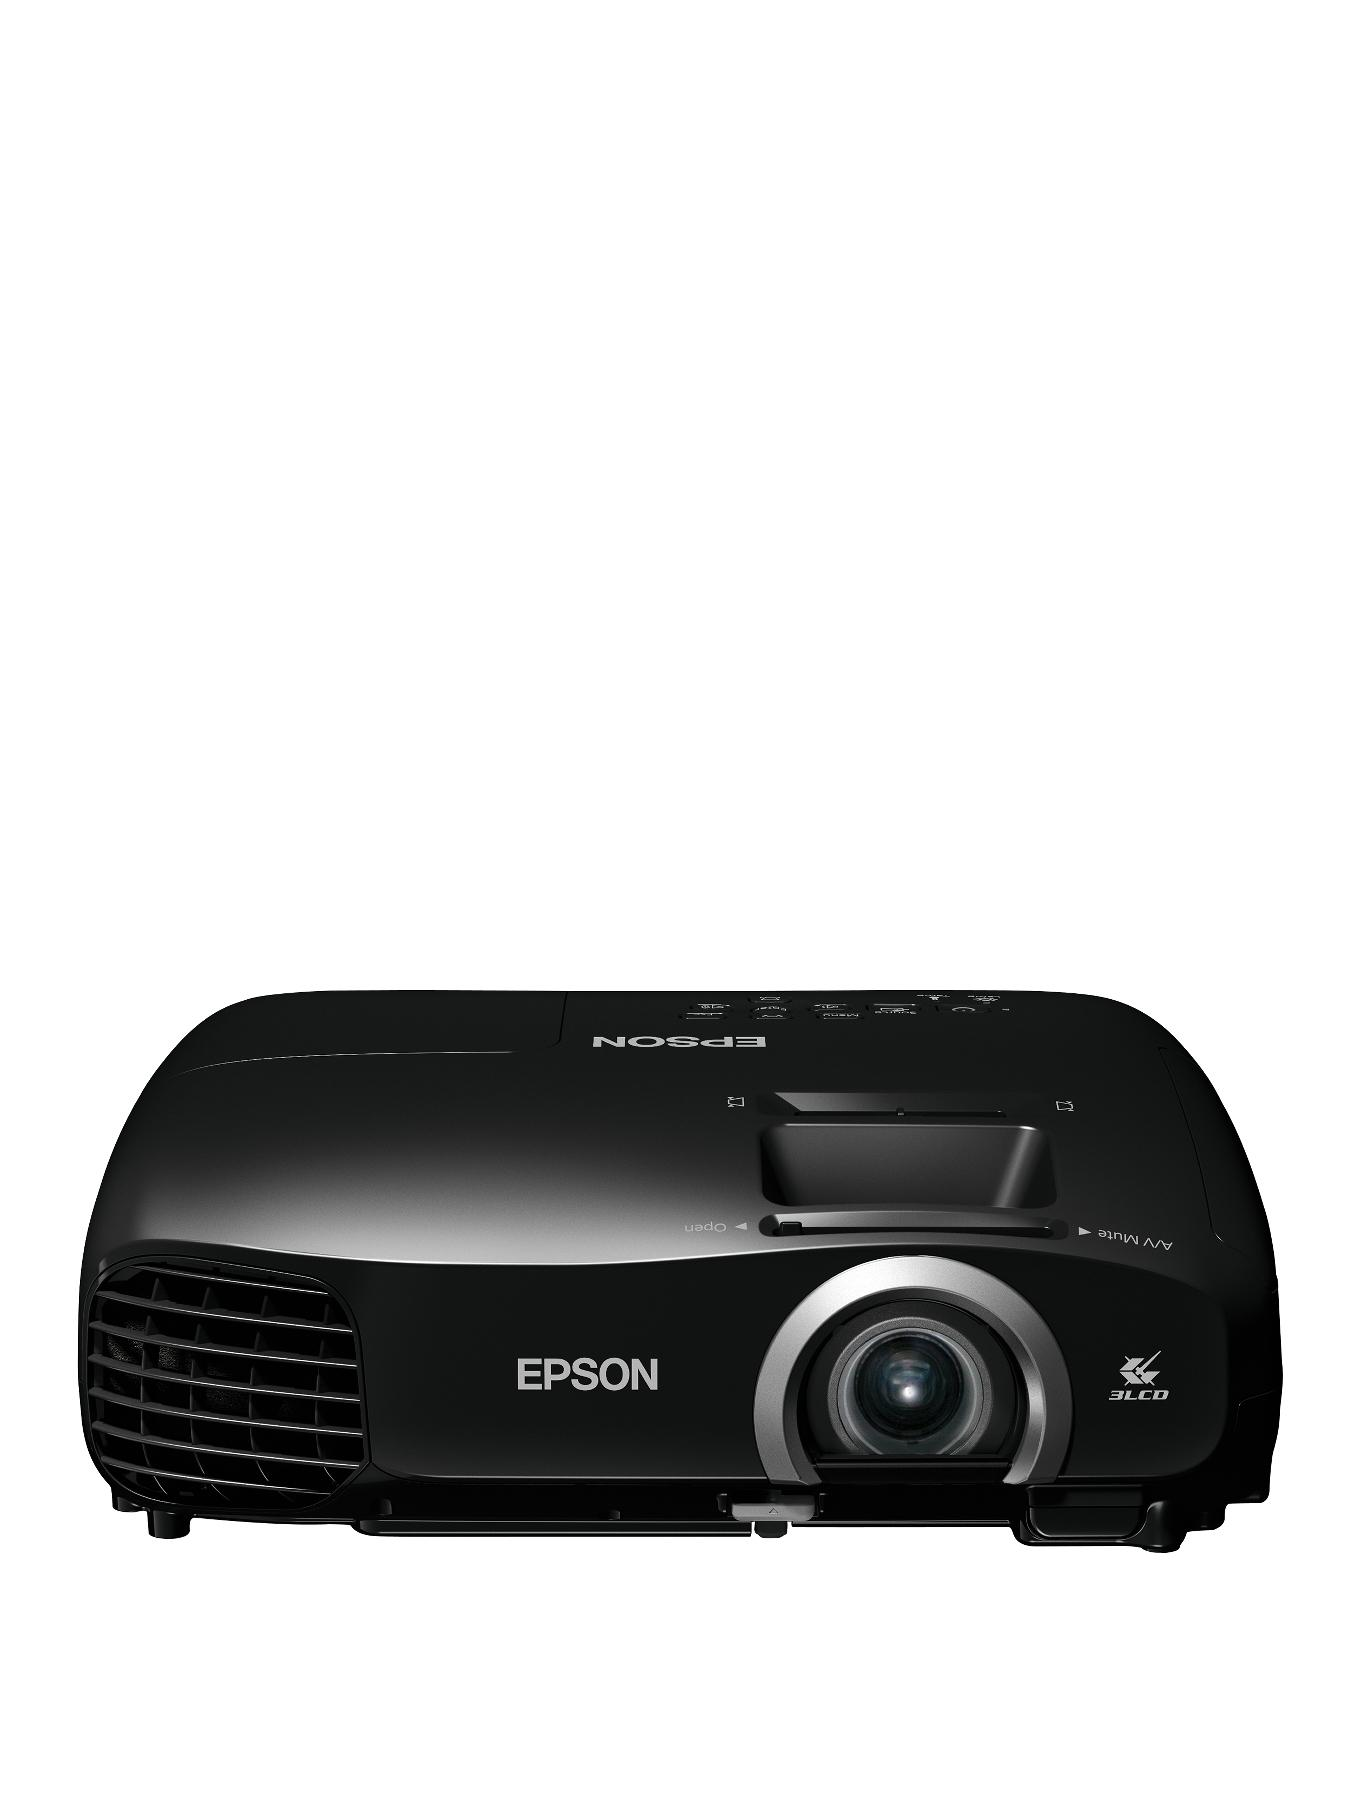 Epson EHTW5200 Full HD 1080p 3D Home Cinema Projector with integrated speaker Black